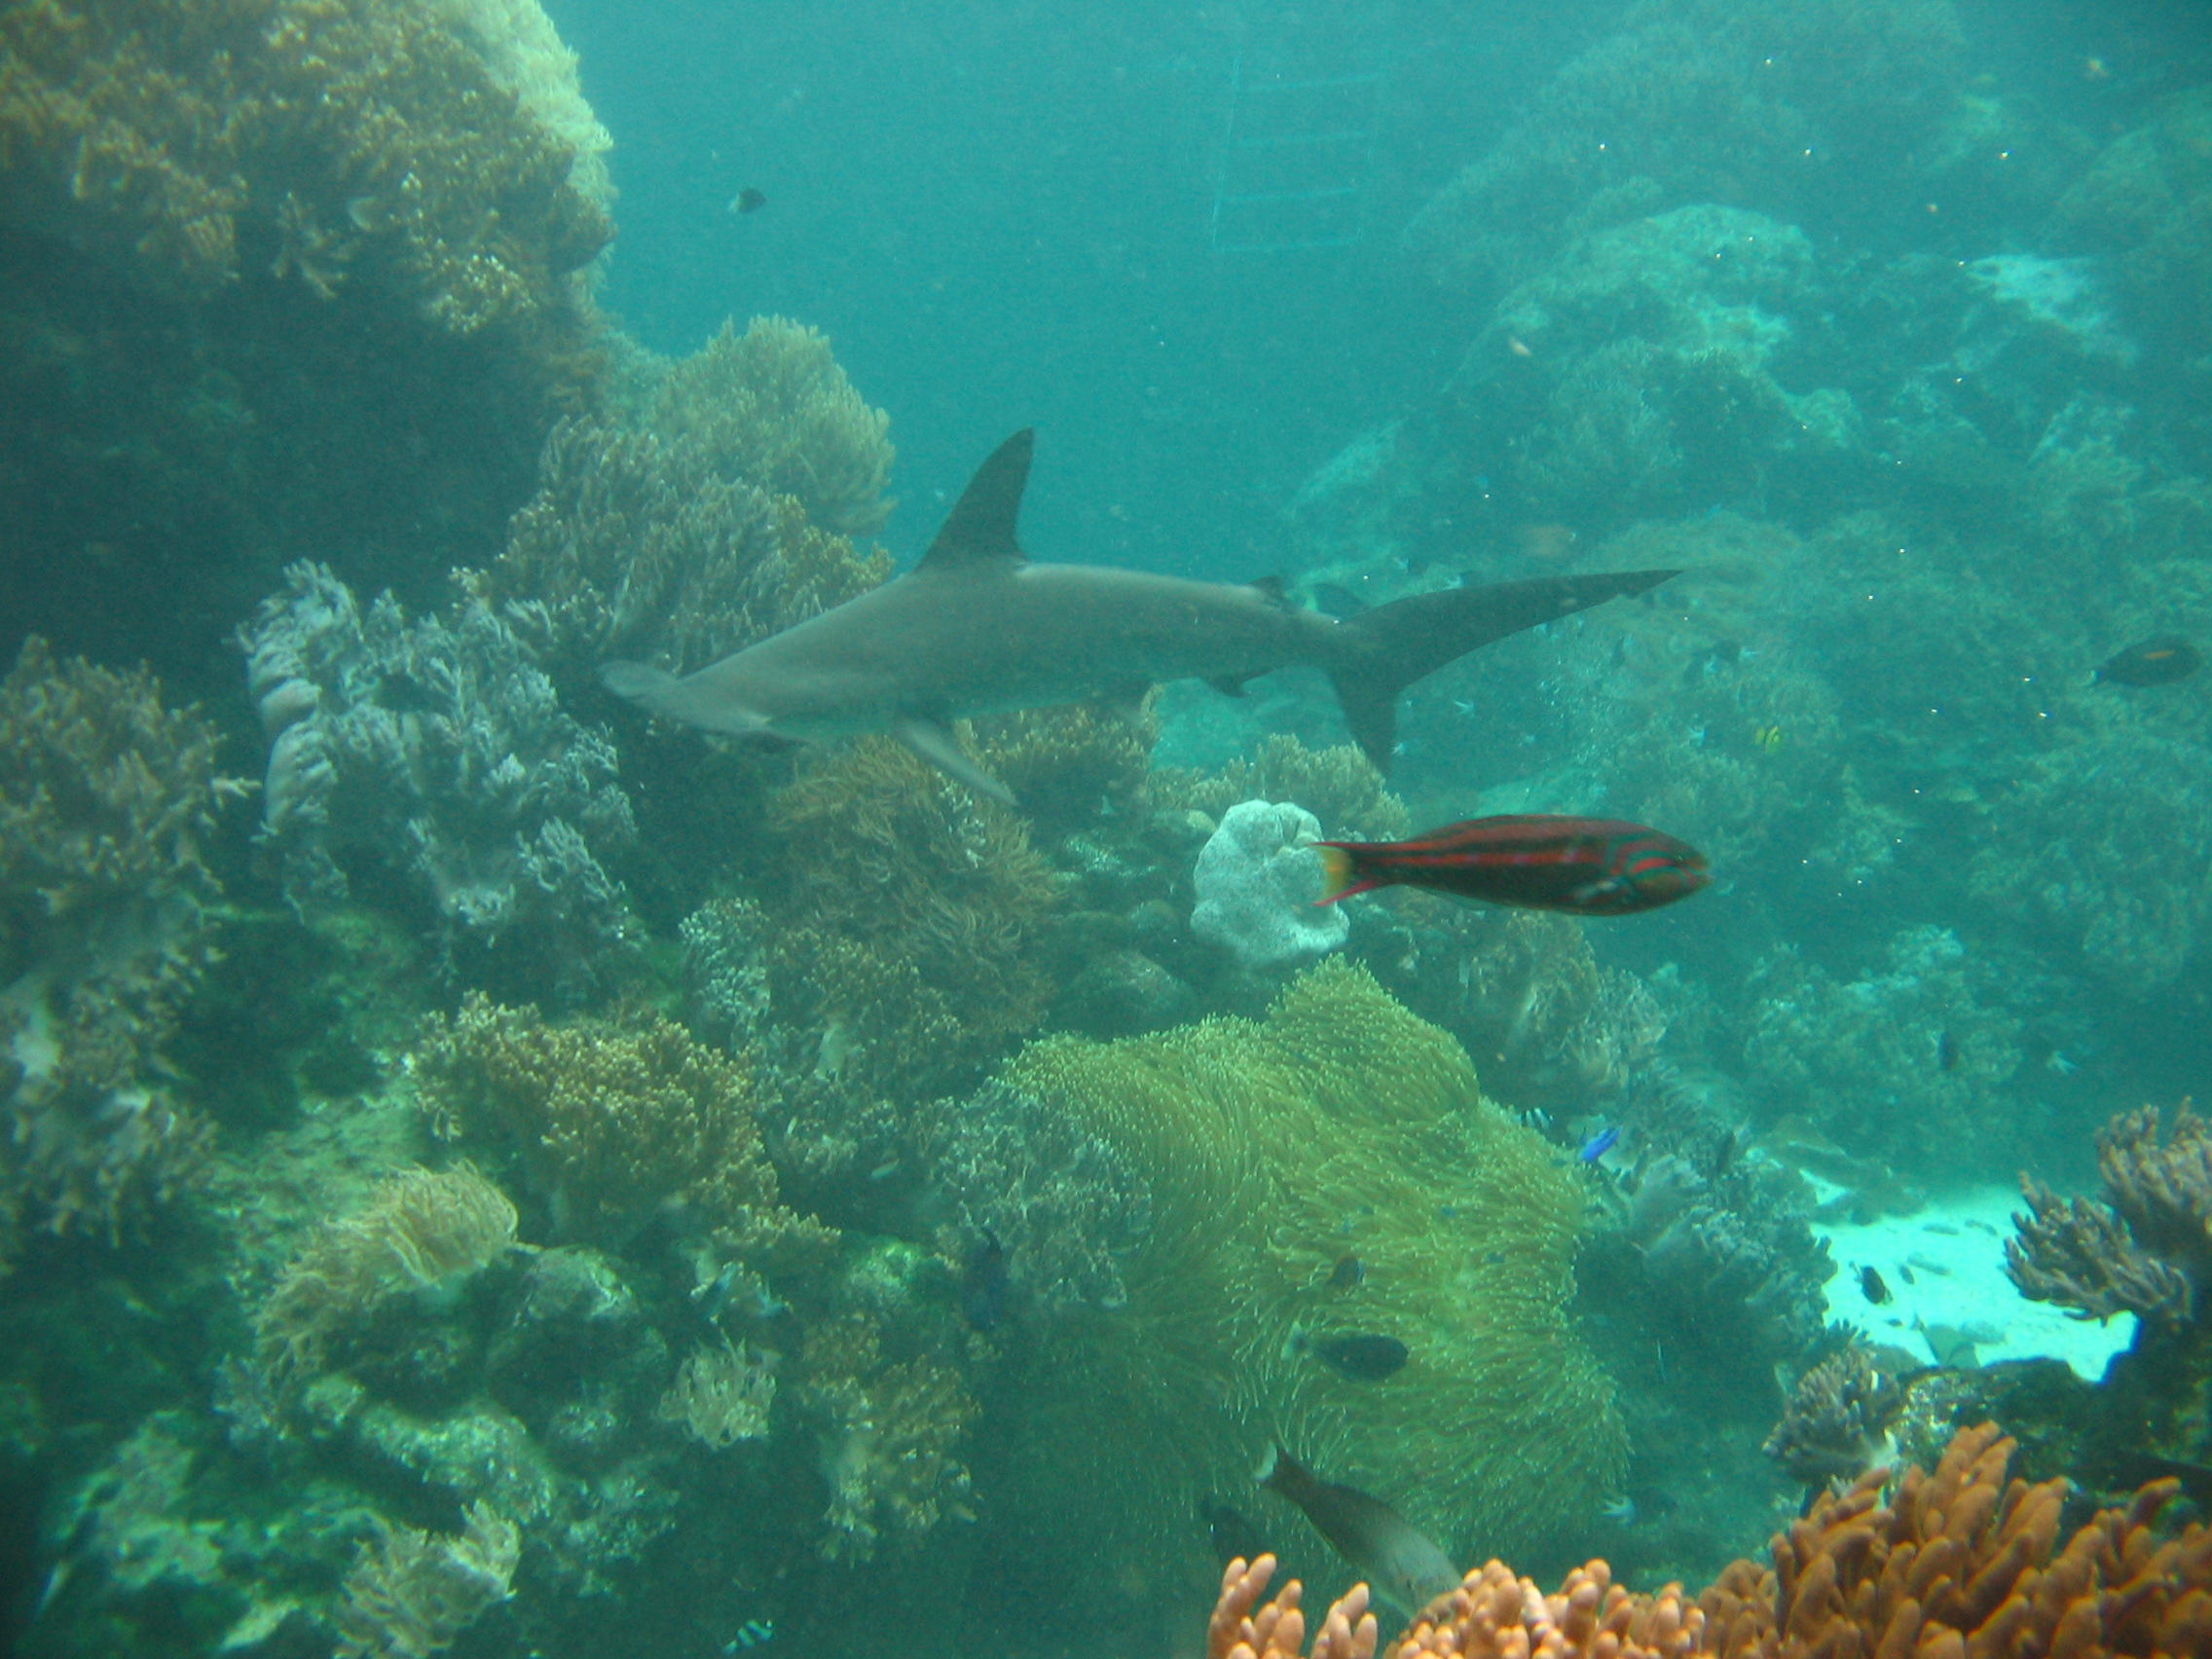 Scalloped Hammerhead, Sphyrna lewini (Griffith & Smith) in ...